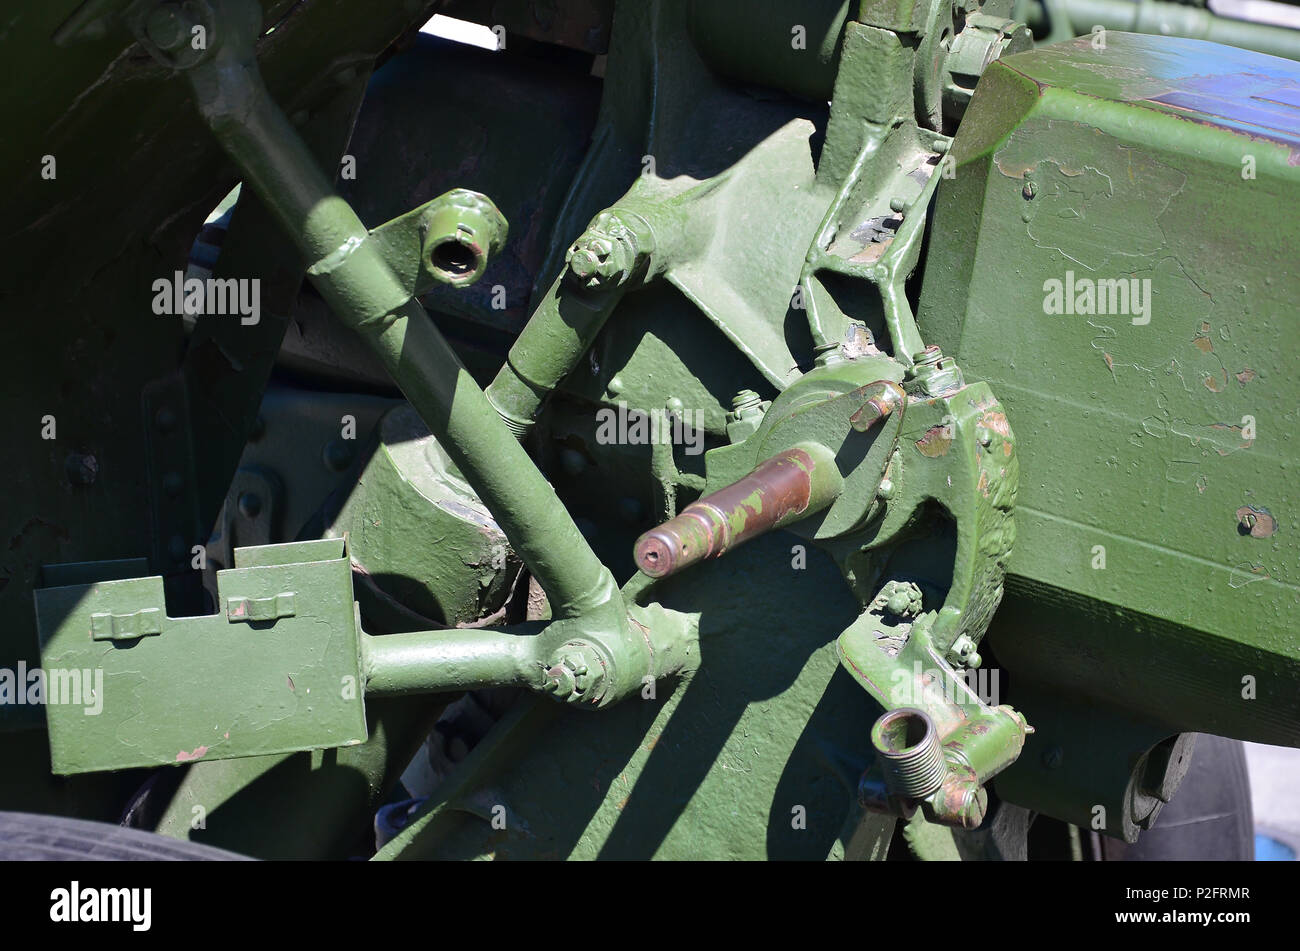 A close-up mechanism of a portable weapon of the Soviet Union of World War II, painted in a dark green color - Stock Image